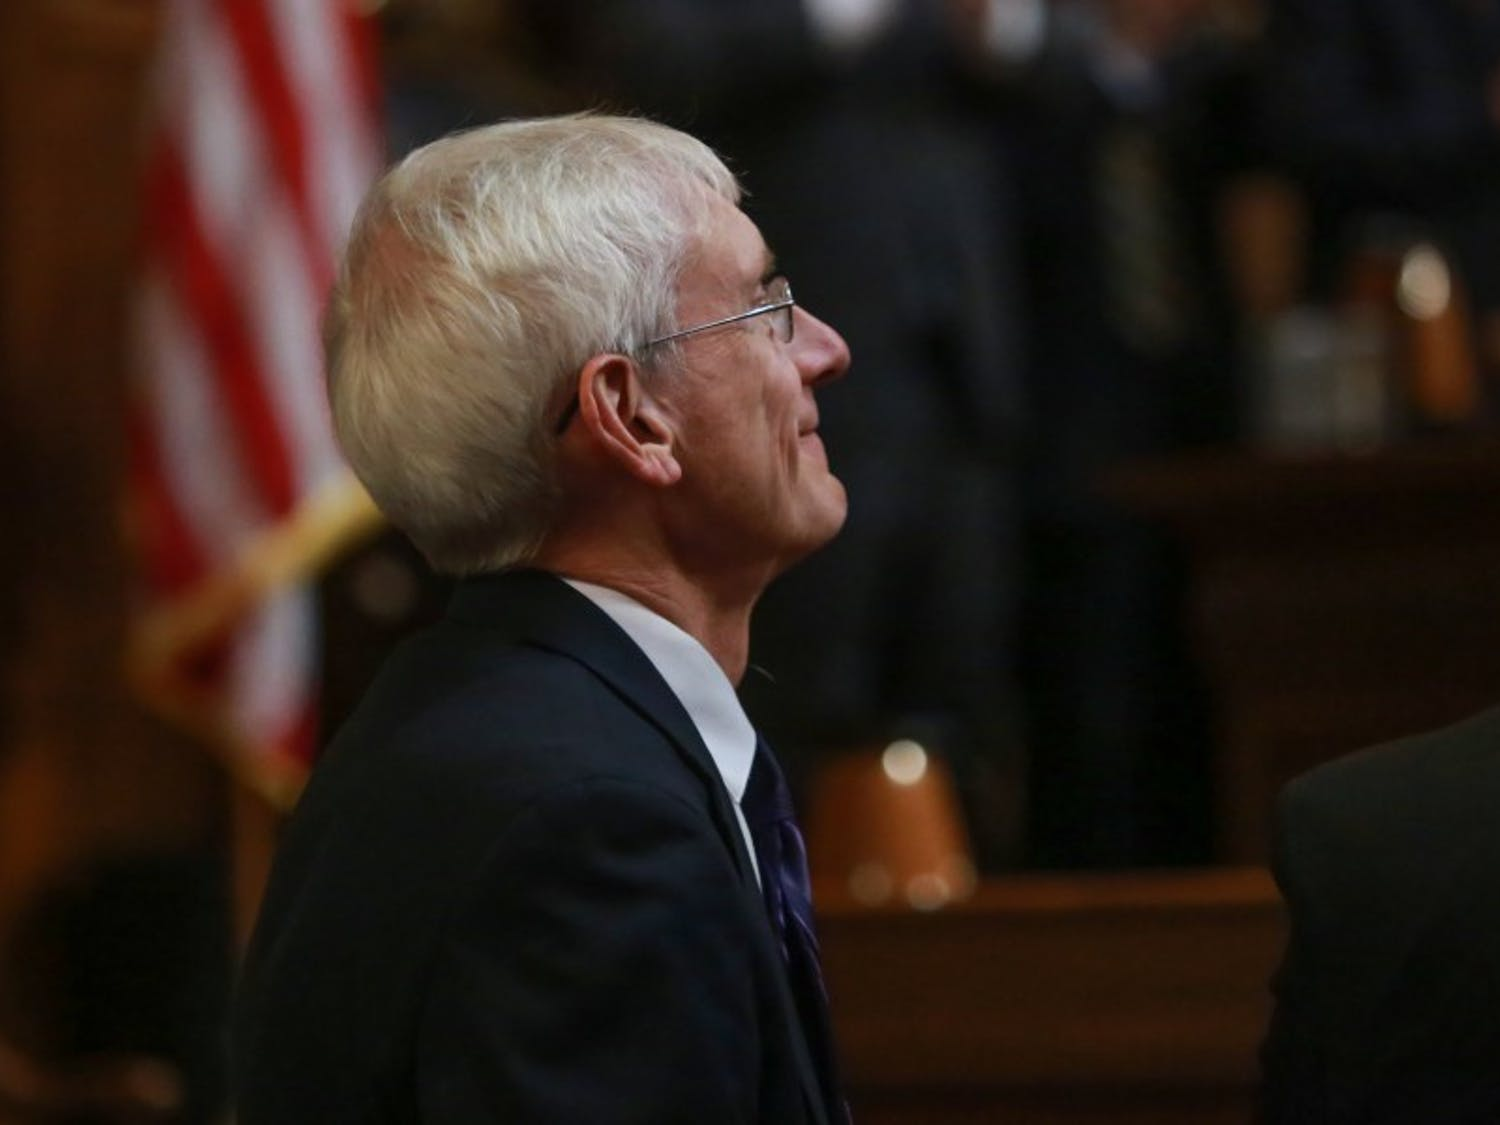 State superintendent Tony Evers is running against Gov. Scott Walker for governor. If elected, Evers says he will cut tuition for two-year UW schools by 50 percent.